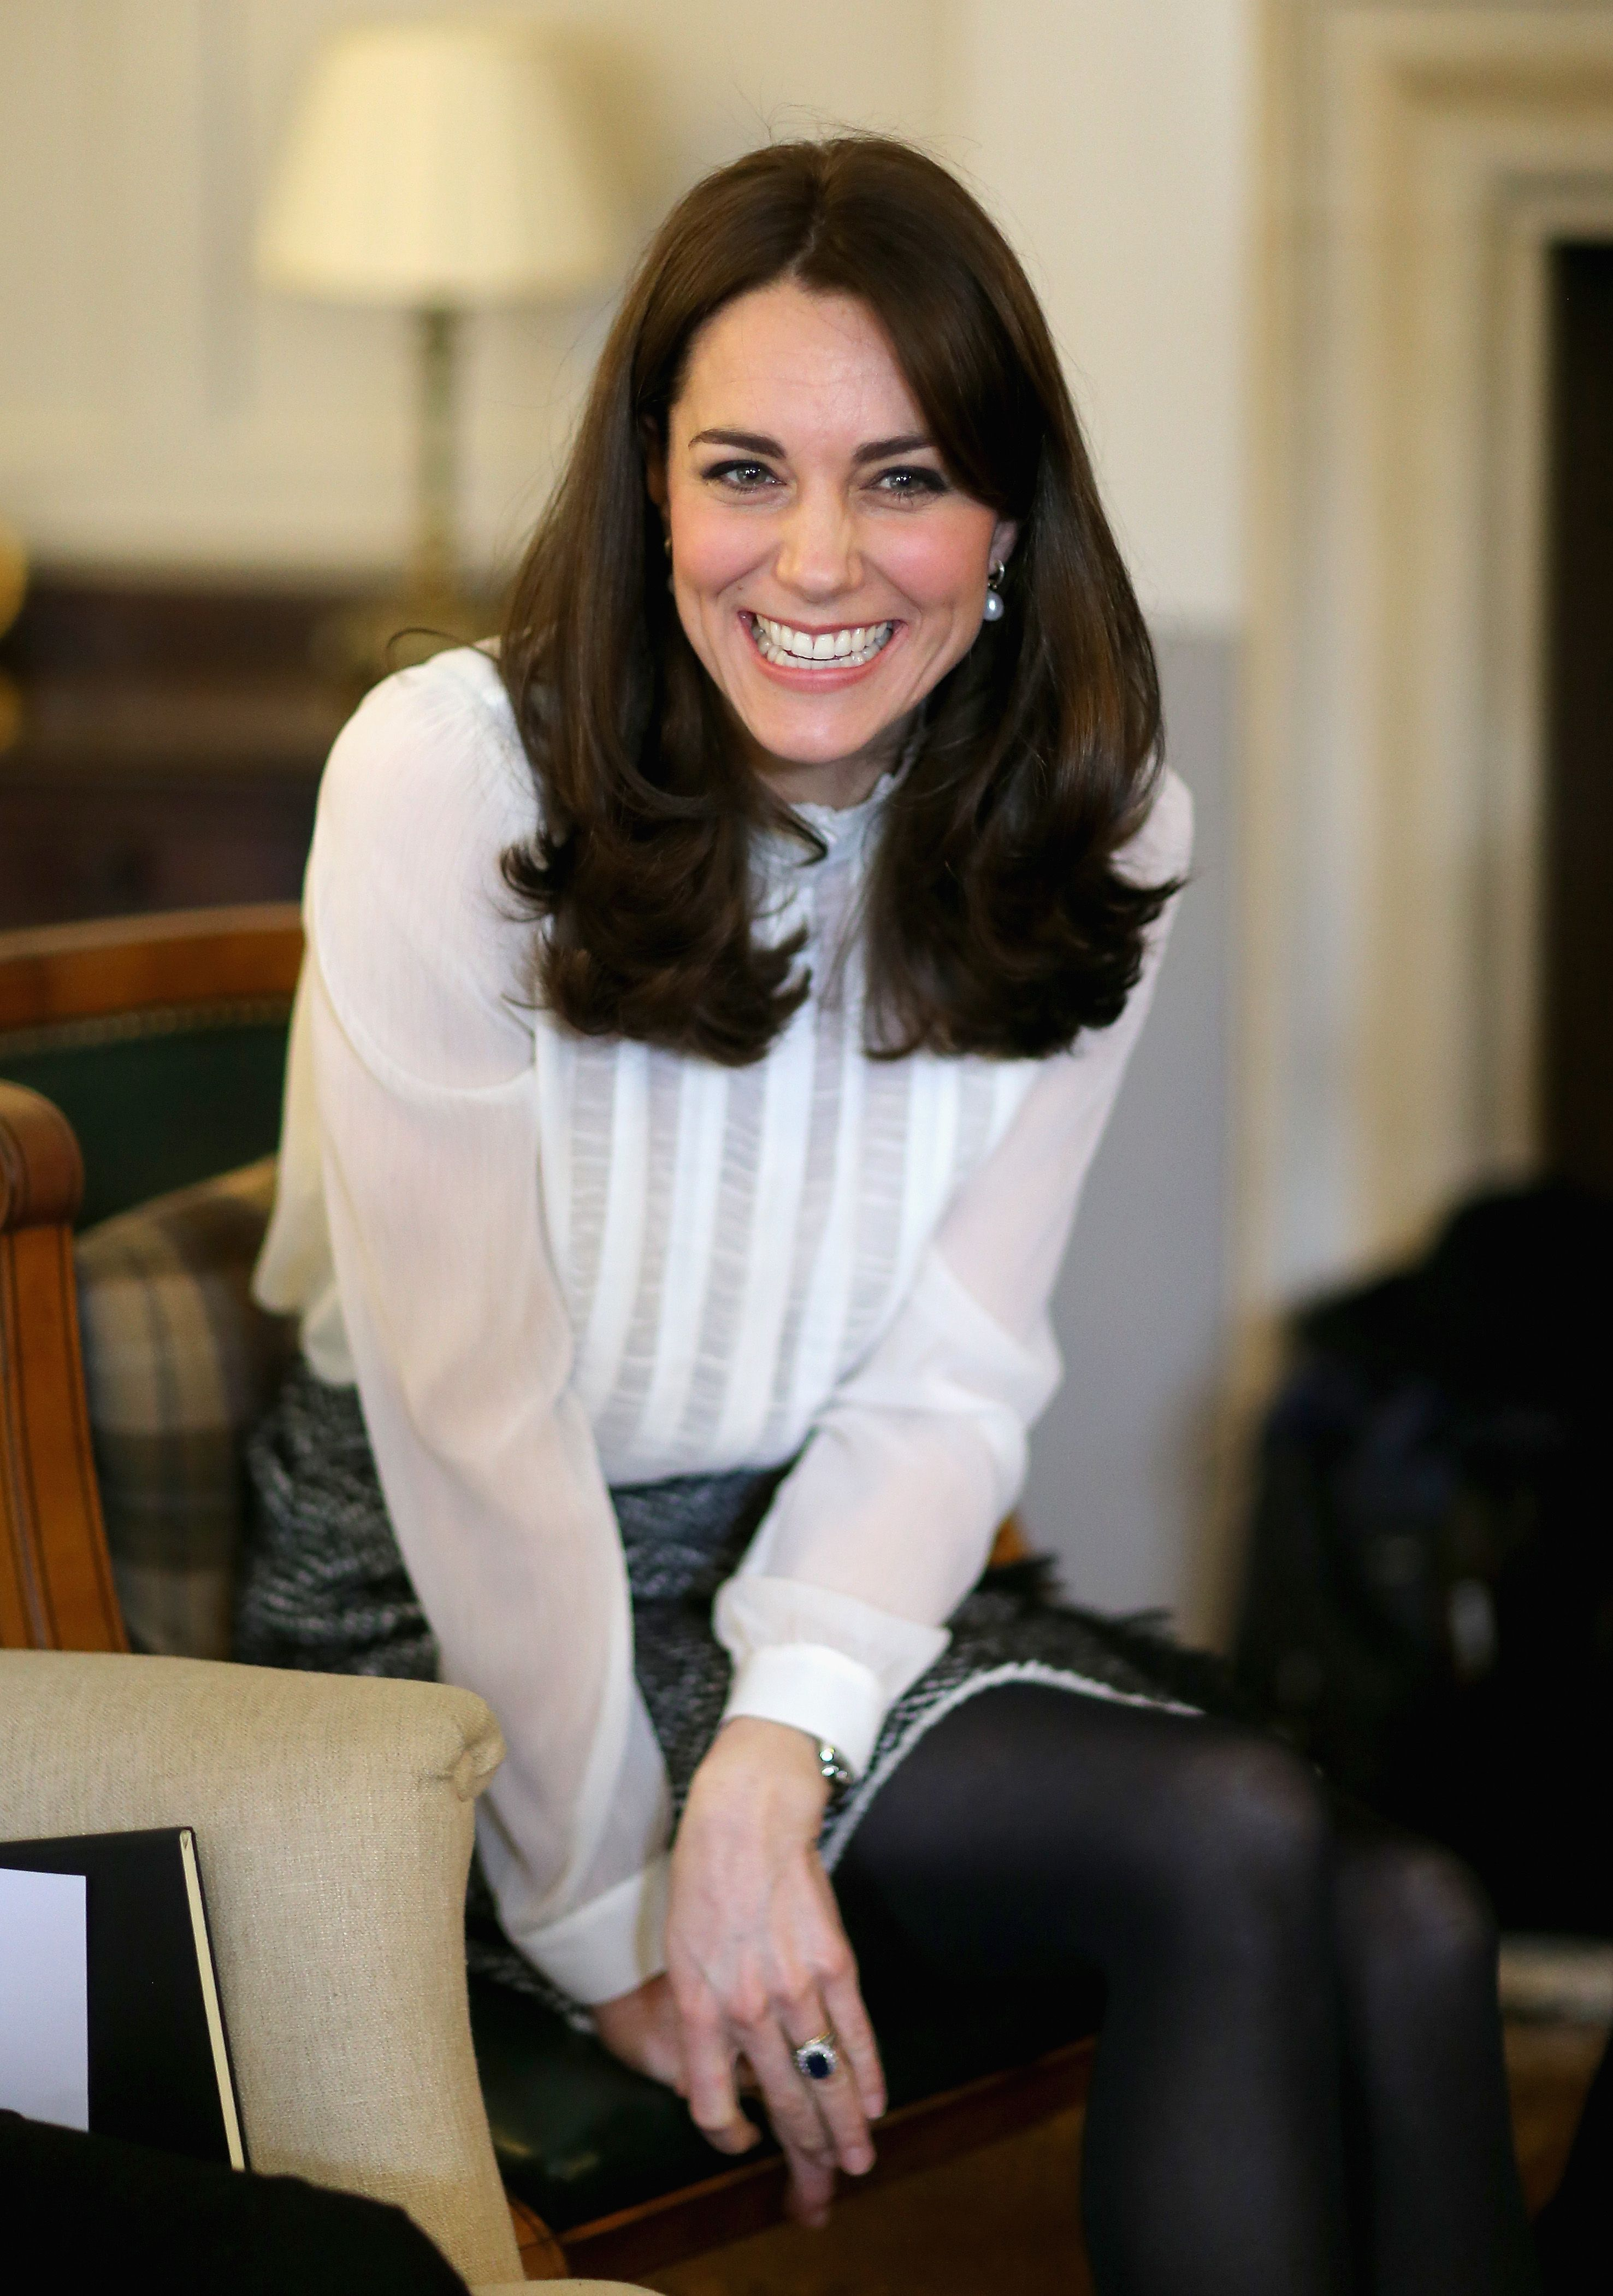 kate middleton s new lighter hair colour has blonde highlights harper s bazaar